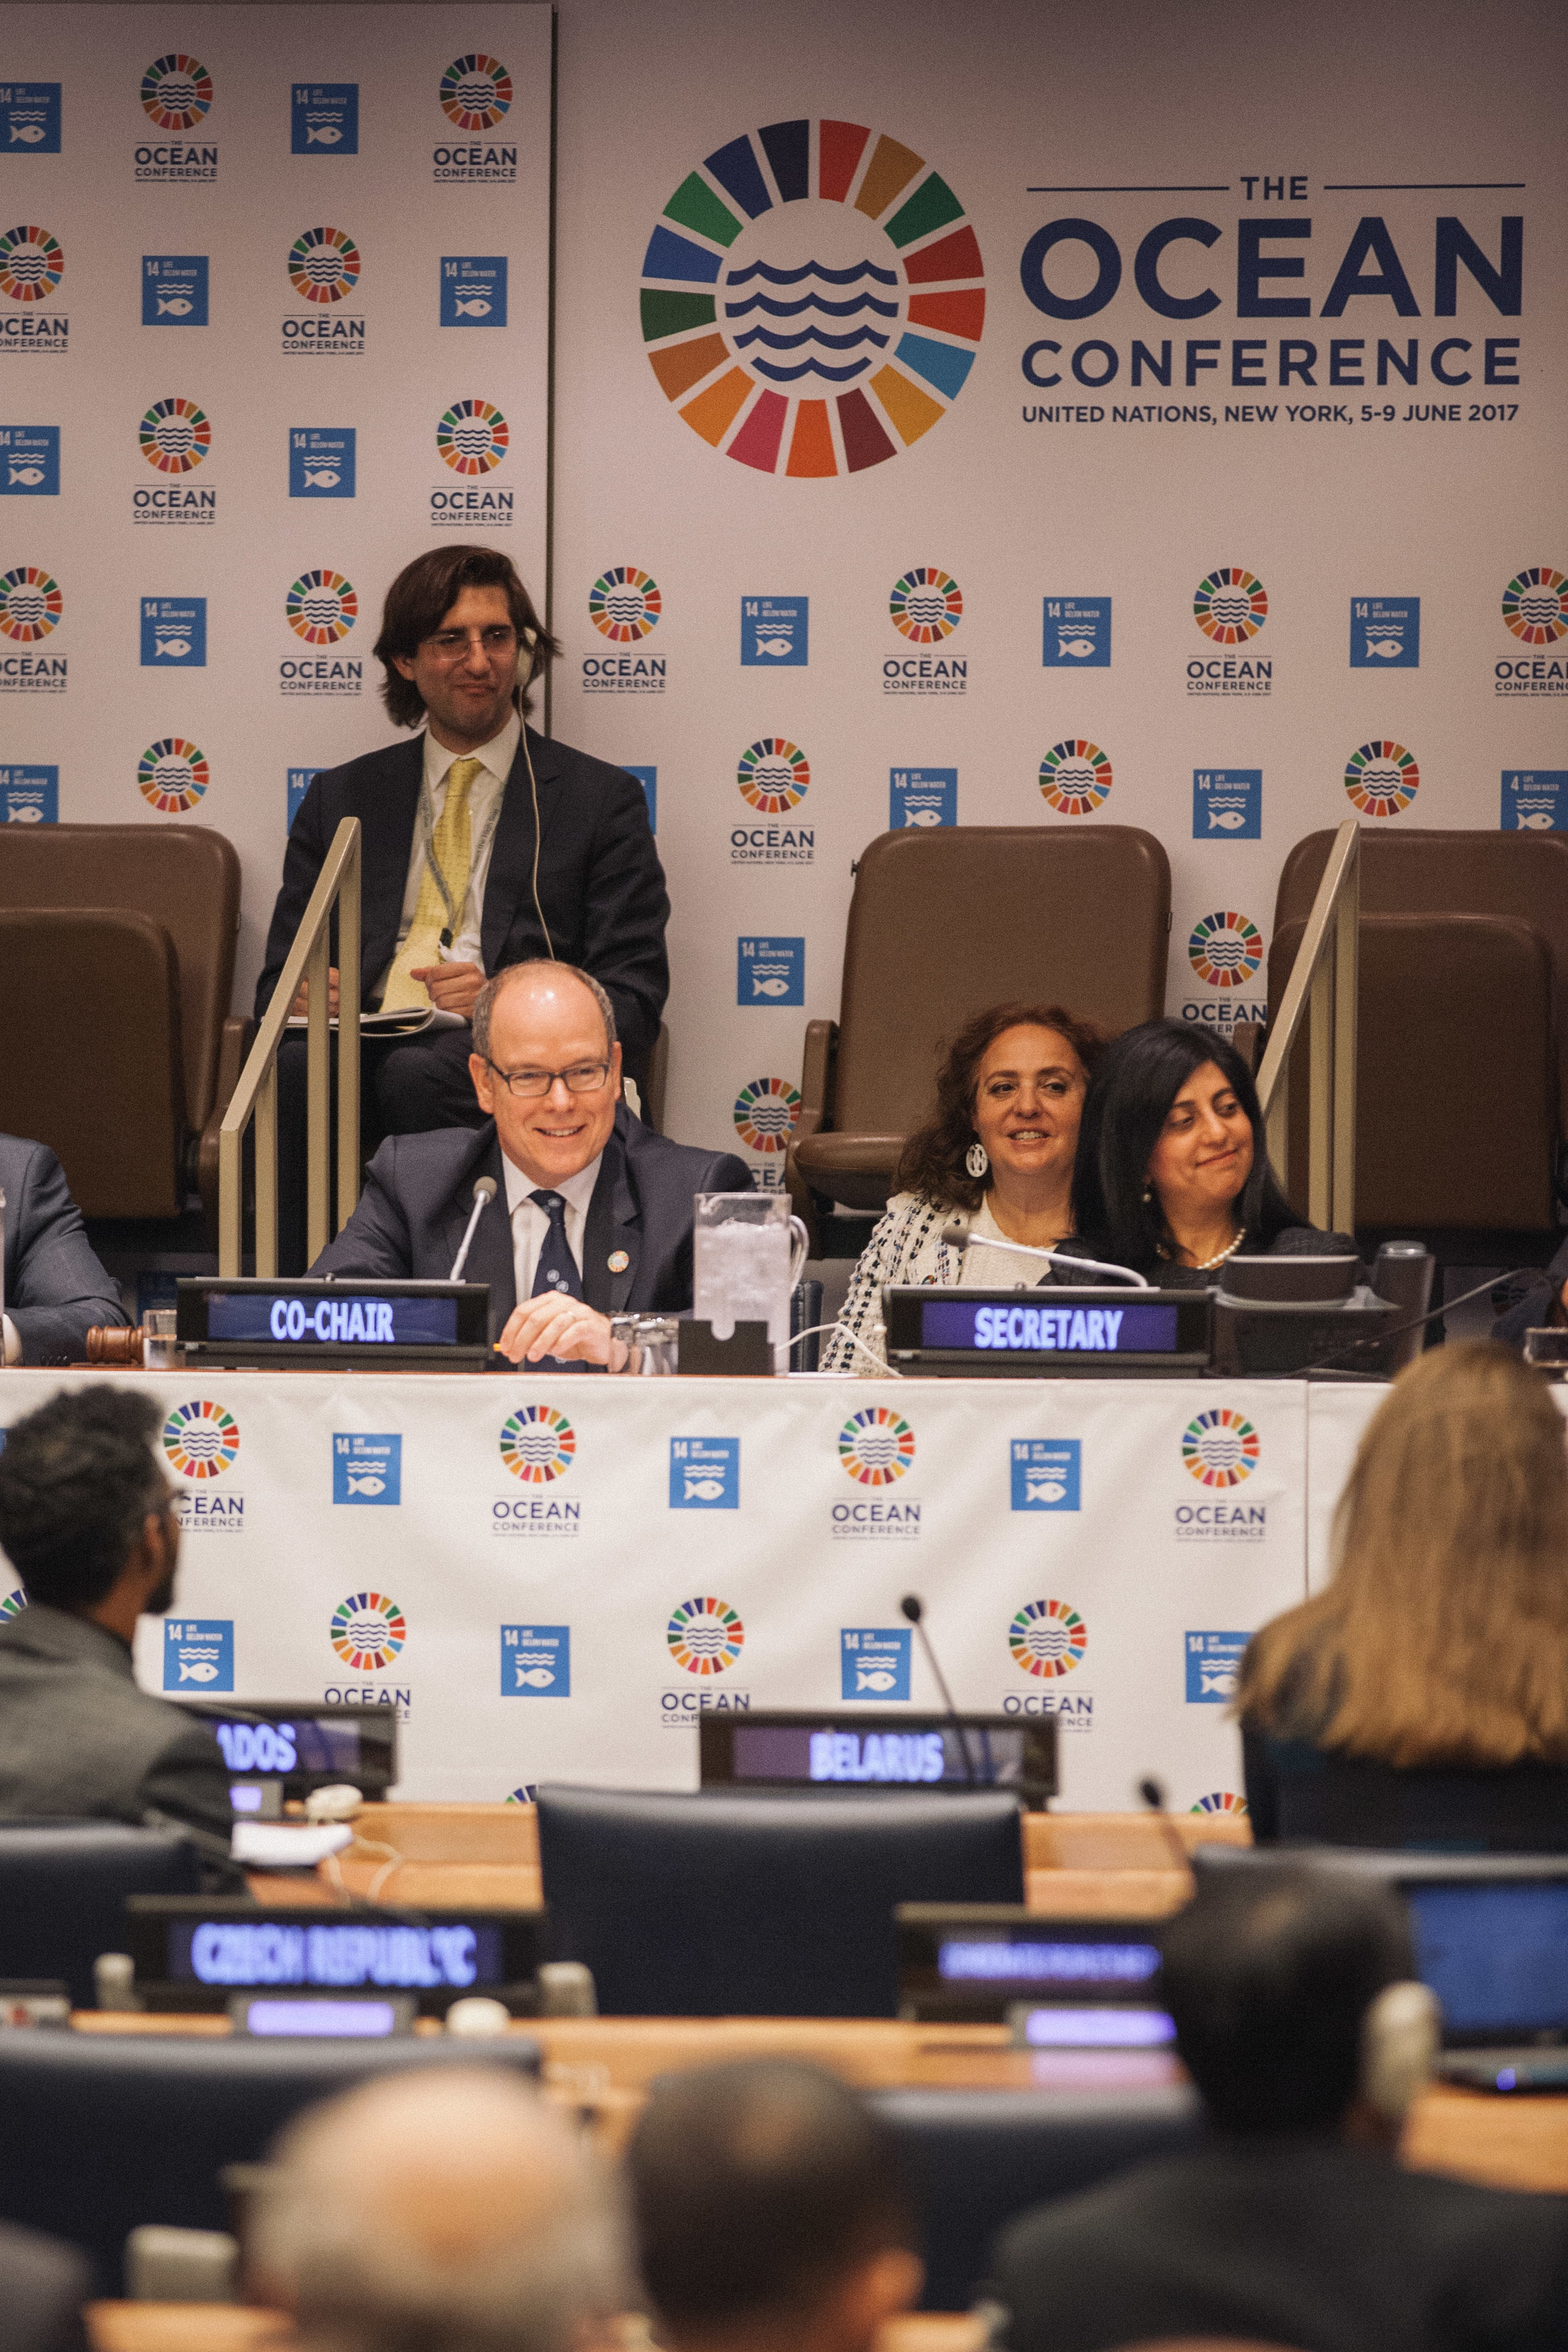 Prince Albert II co-chairs a session on climate change at the first Oceans Conference at the United Nations, 2017.